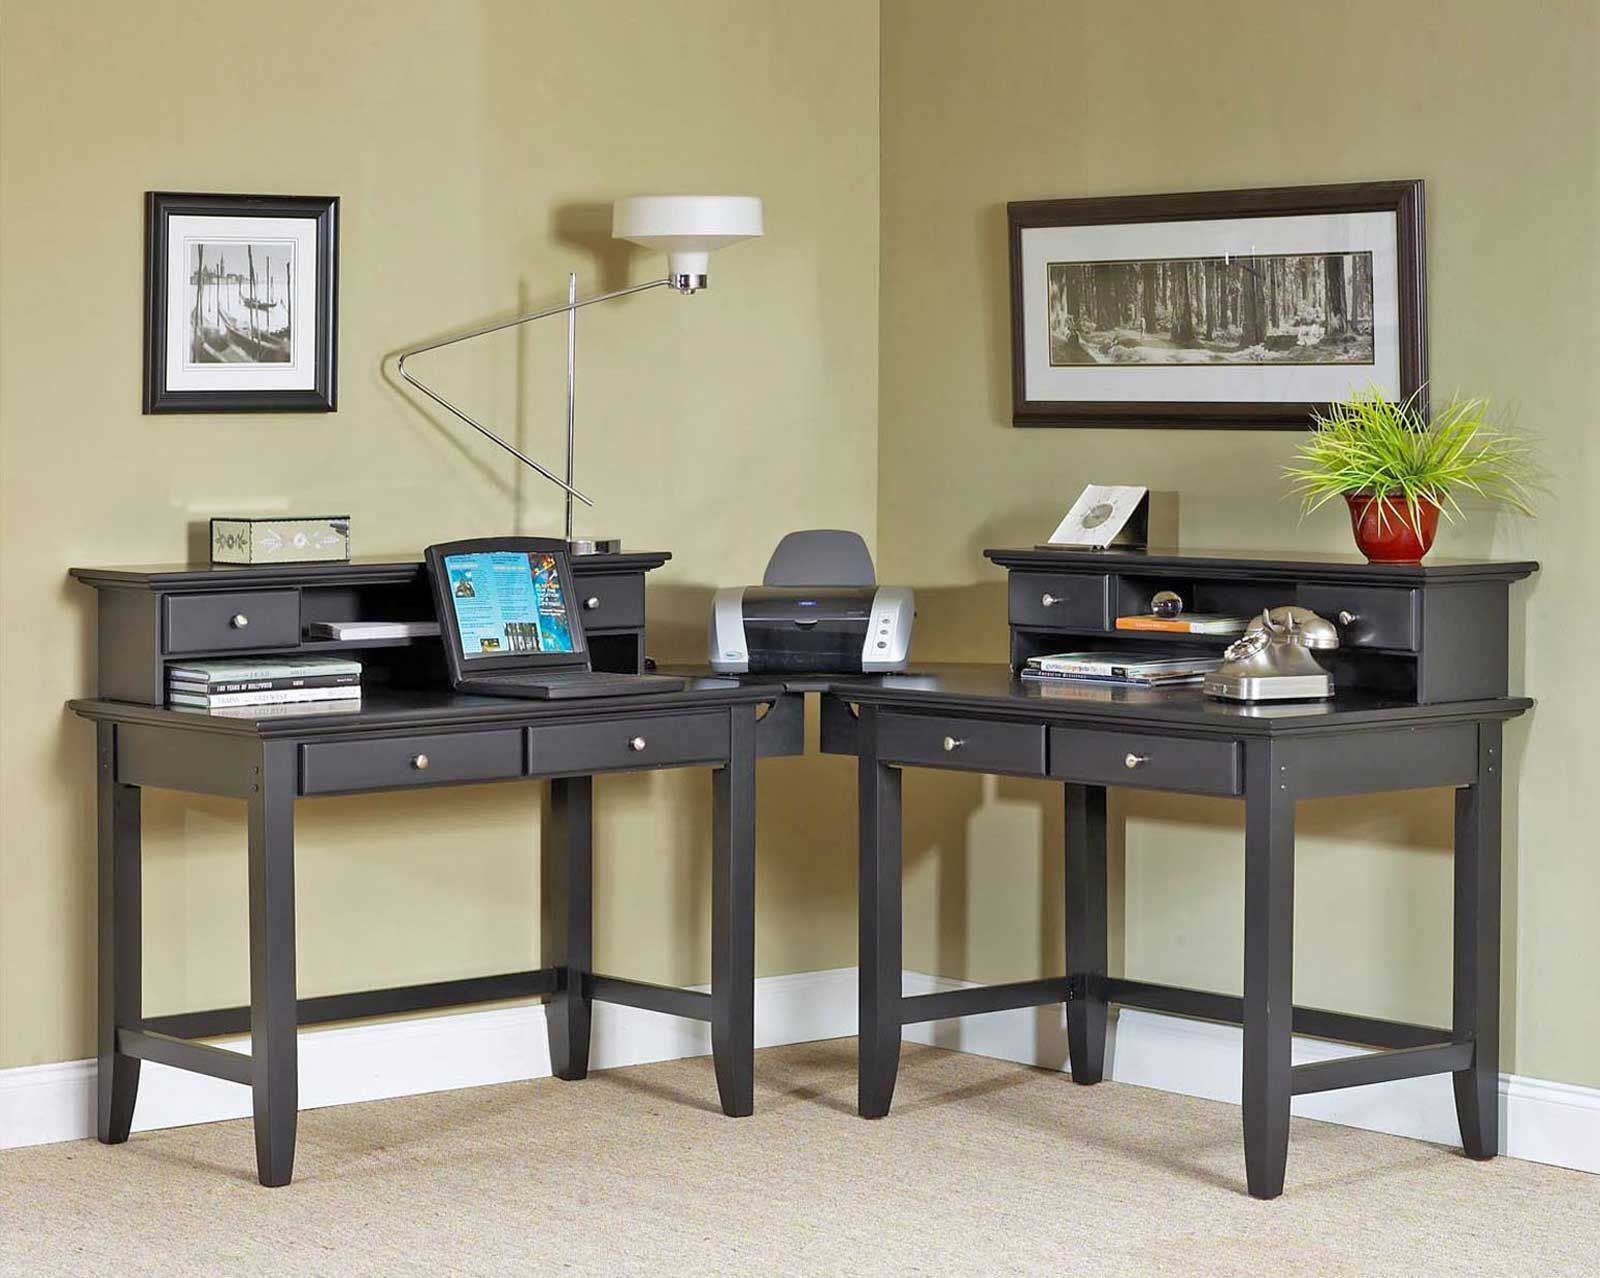 Home Office Furniture West Palm Beach Minimalist Decoration Unique 18 Best Office Images On Pinterest  Computer Desks Office Desks . Inspiration